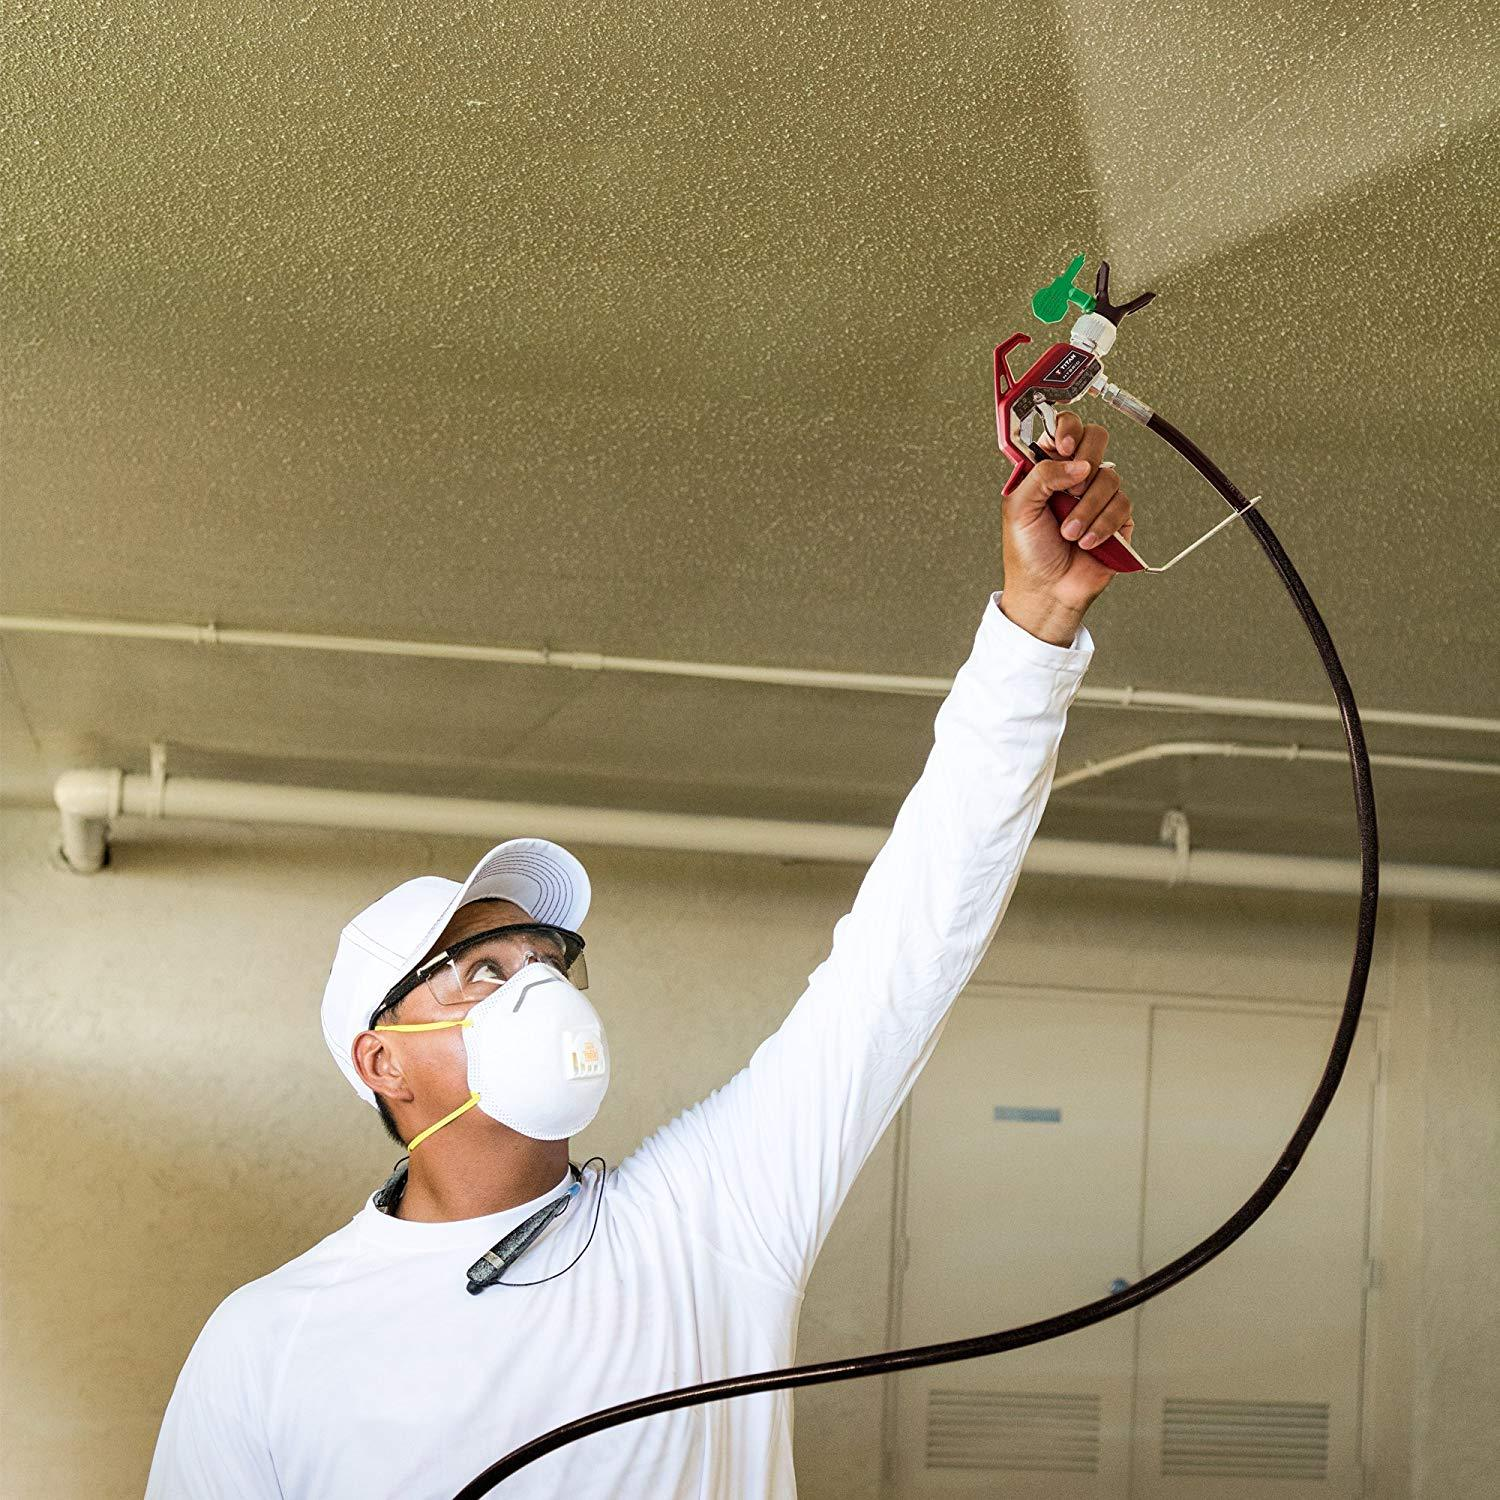 HEA technology decreases overspray by up to 55/% while delivering softer spray providing a consistent spray pattern Titan ControlMax 1500 0580005 High Efficiency Airless Paint Sprayer